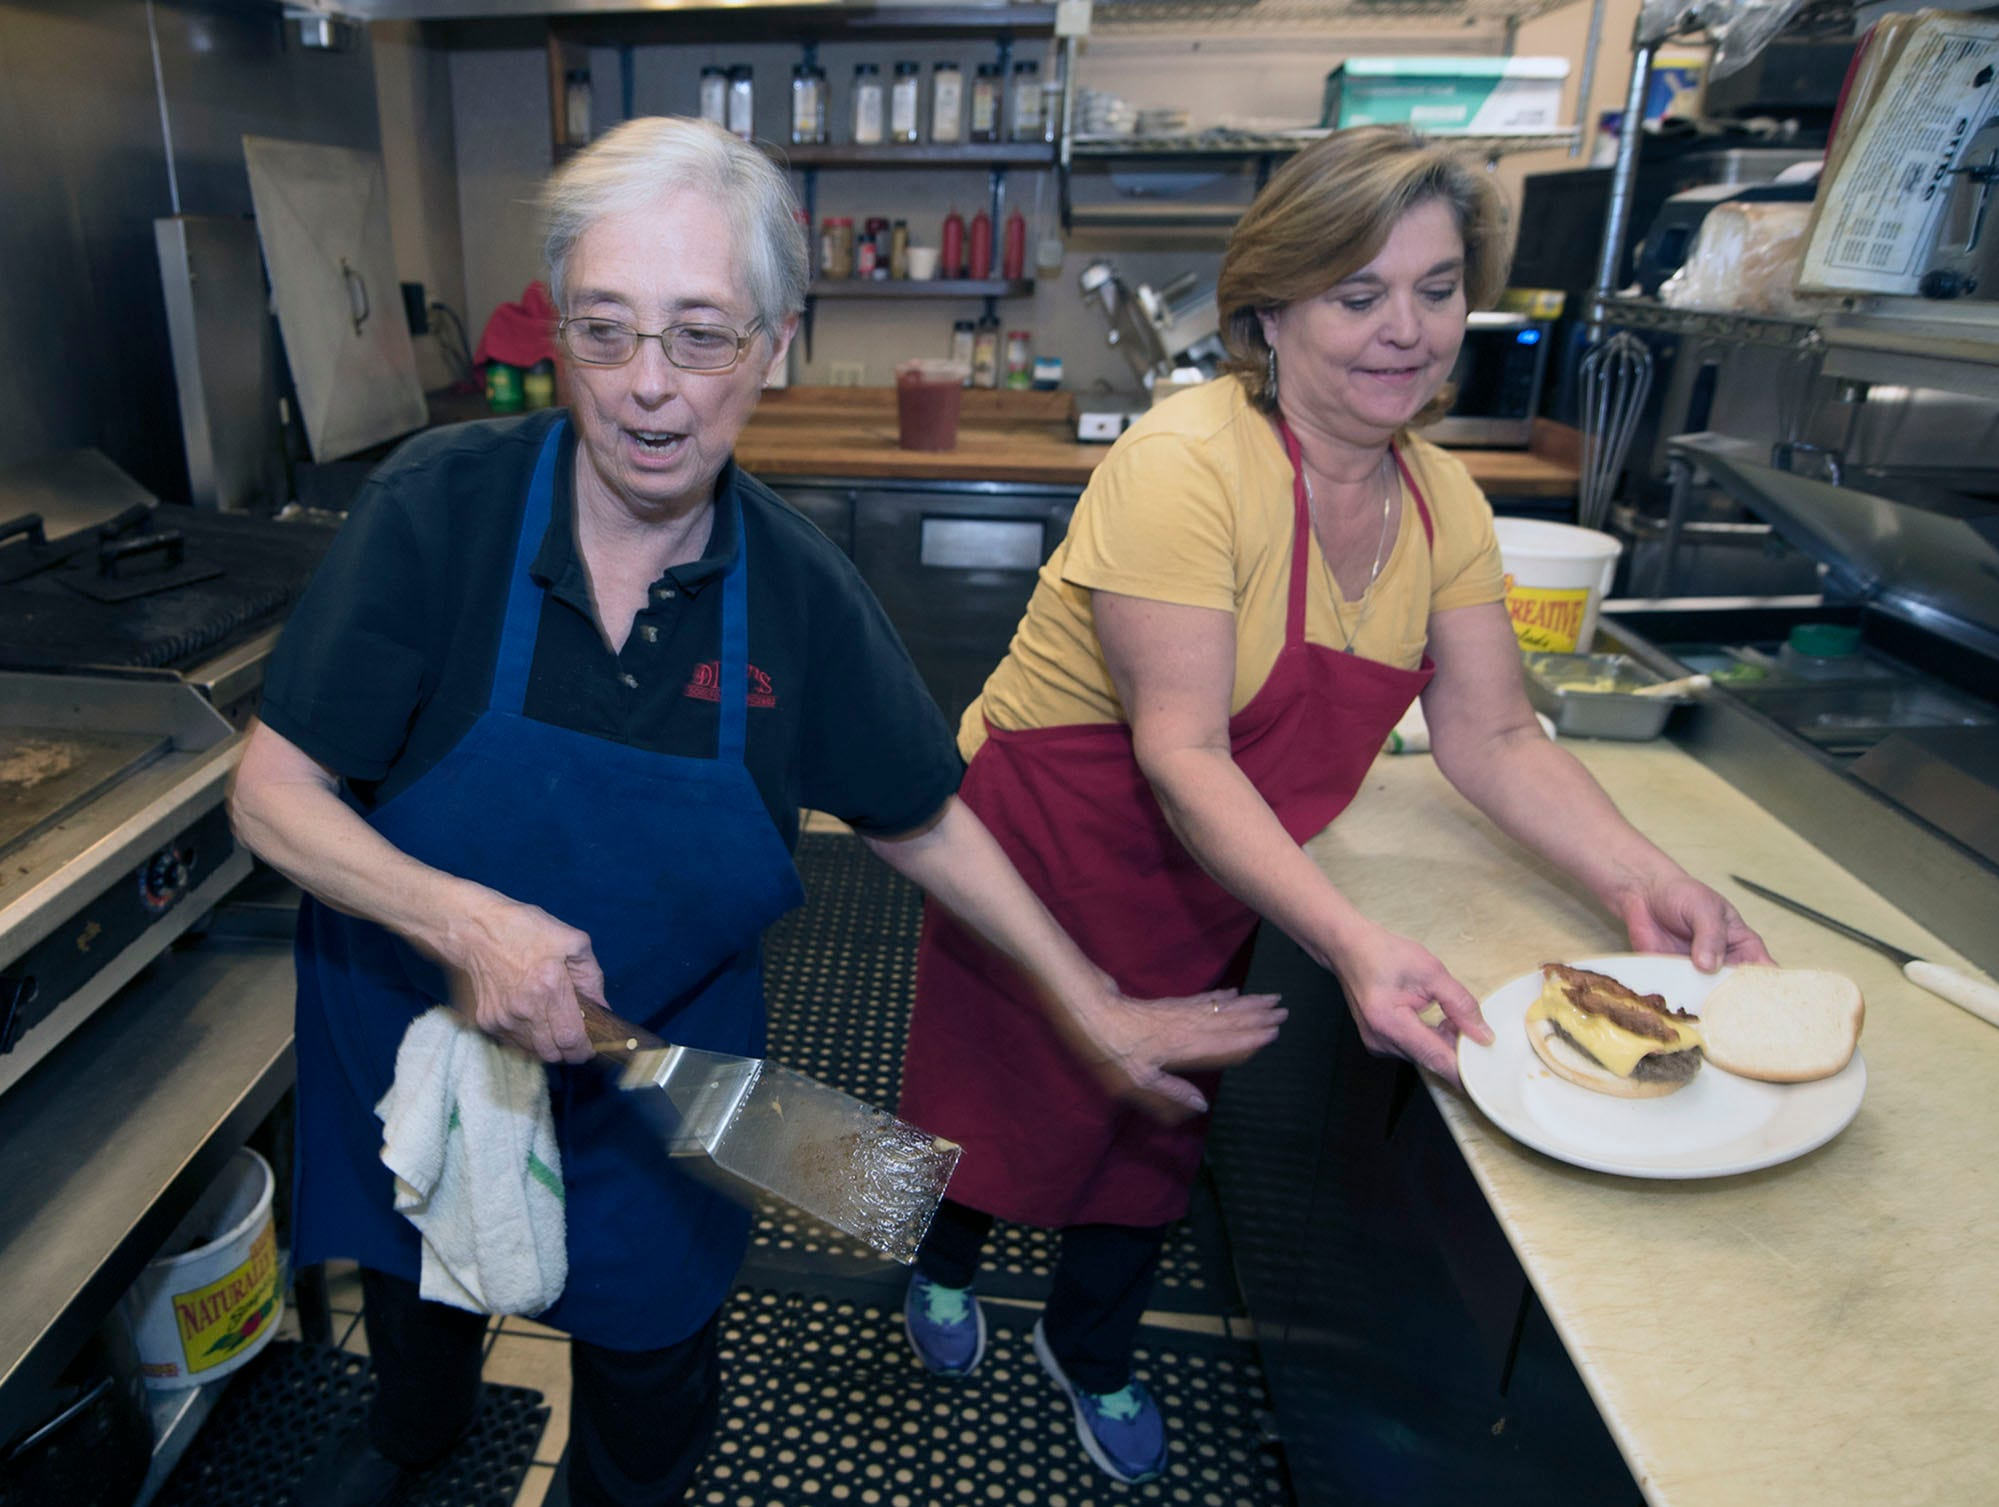 Sandy Mowen, left, and Del Mills' daughter Rene Tolbert work in the kitchen. Health problems experienced by Dilly's owners Del Mills and Sandy Mowen were cited as a reason they are closing the Chambersburg restaurant.